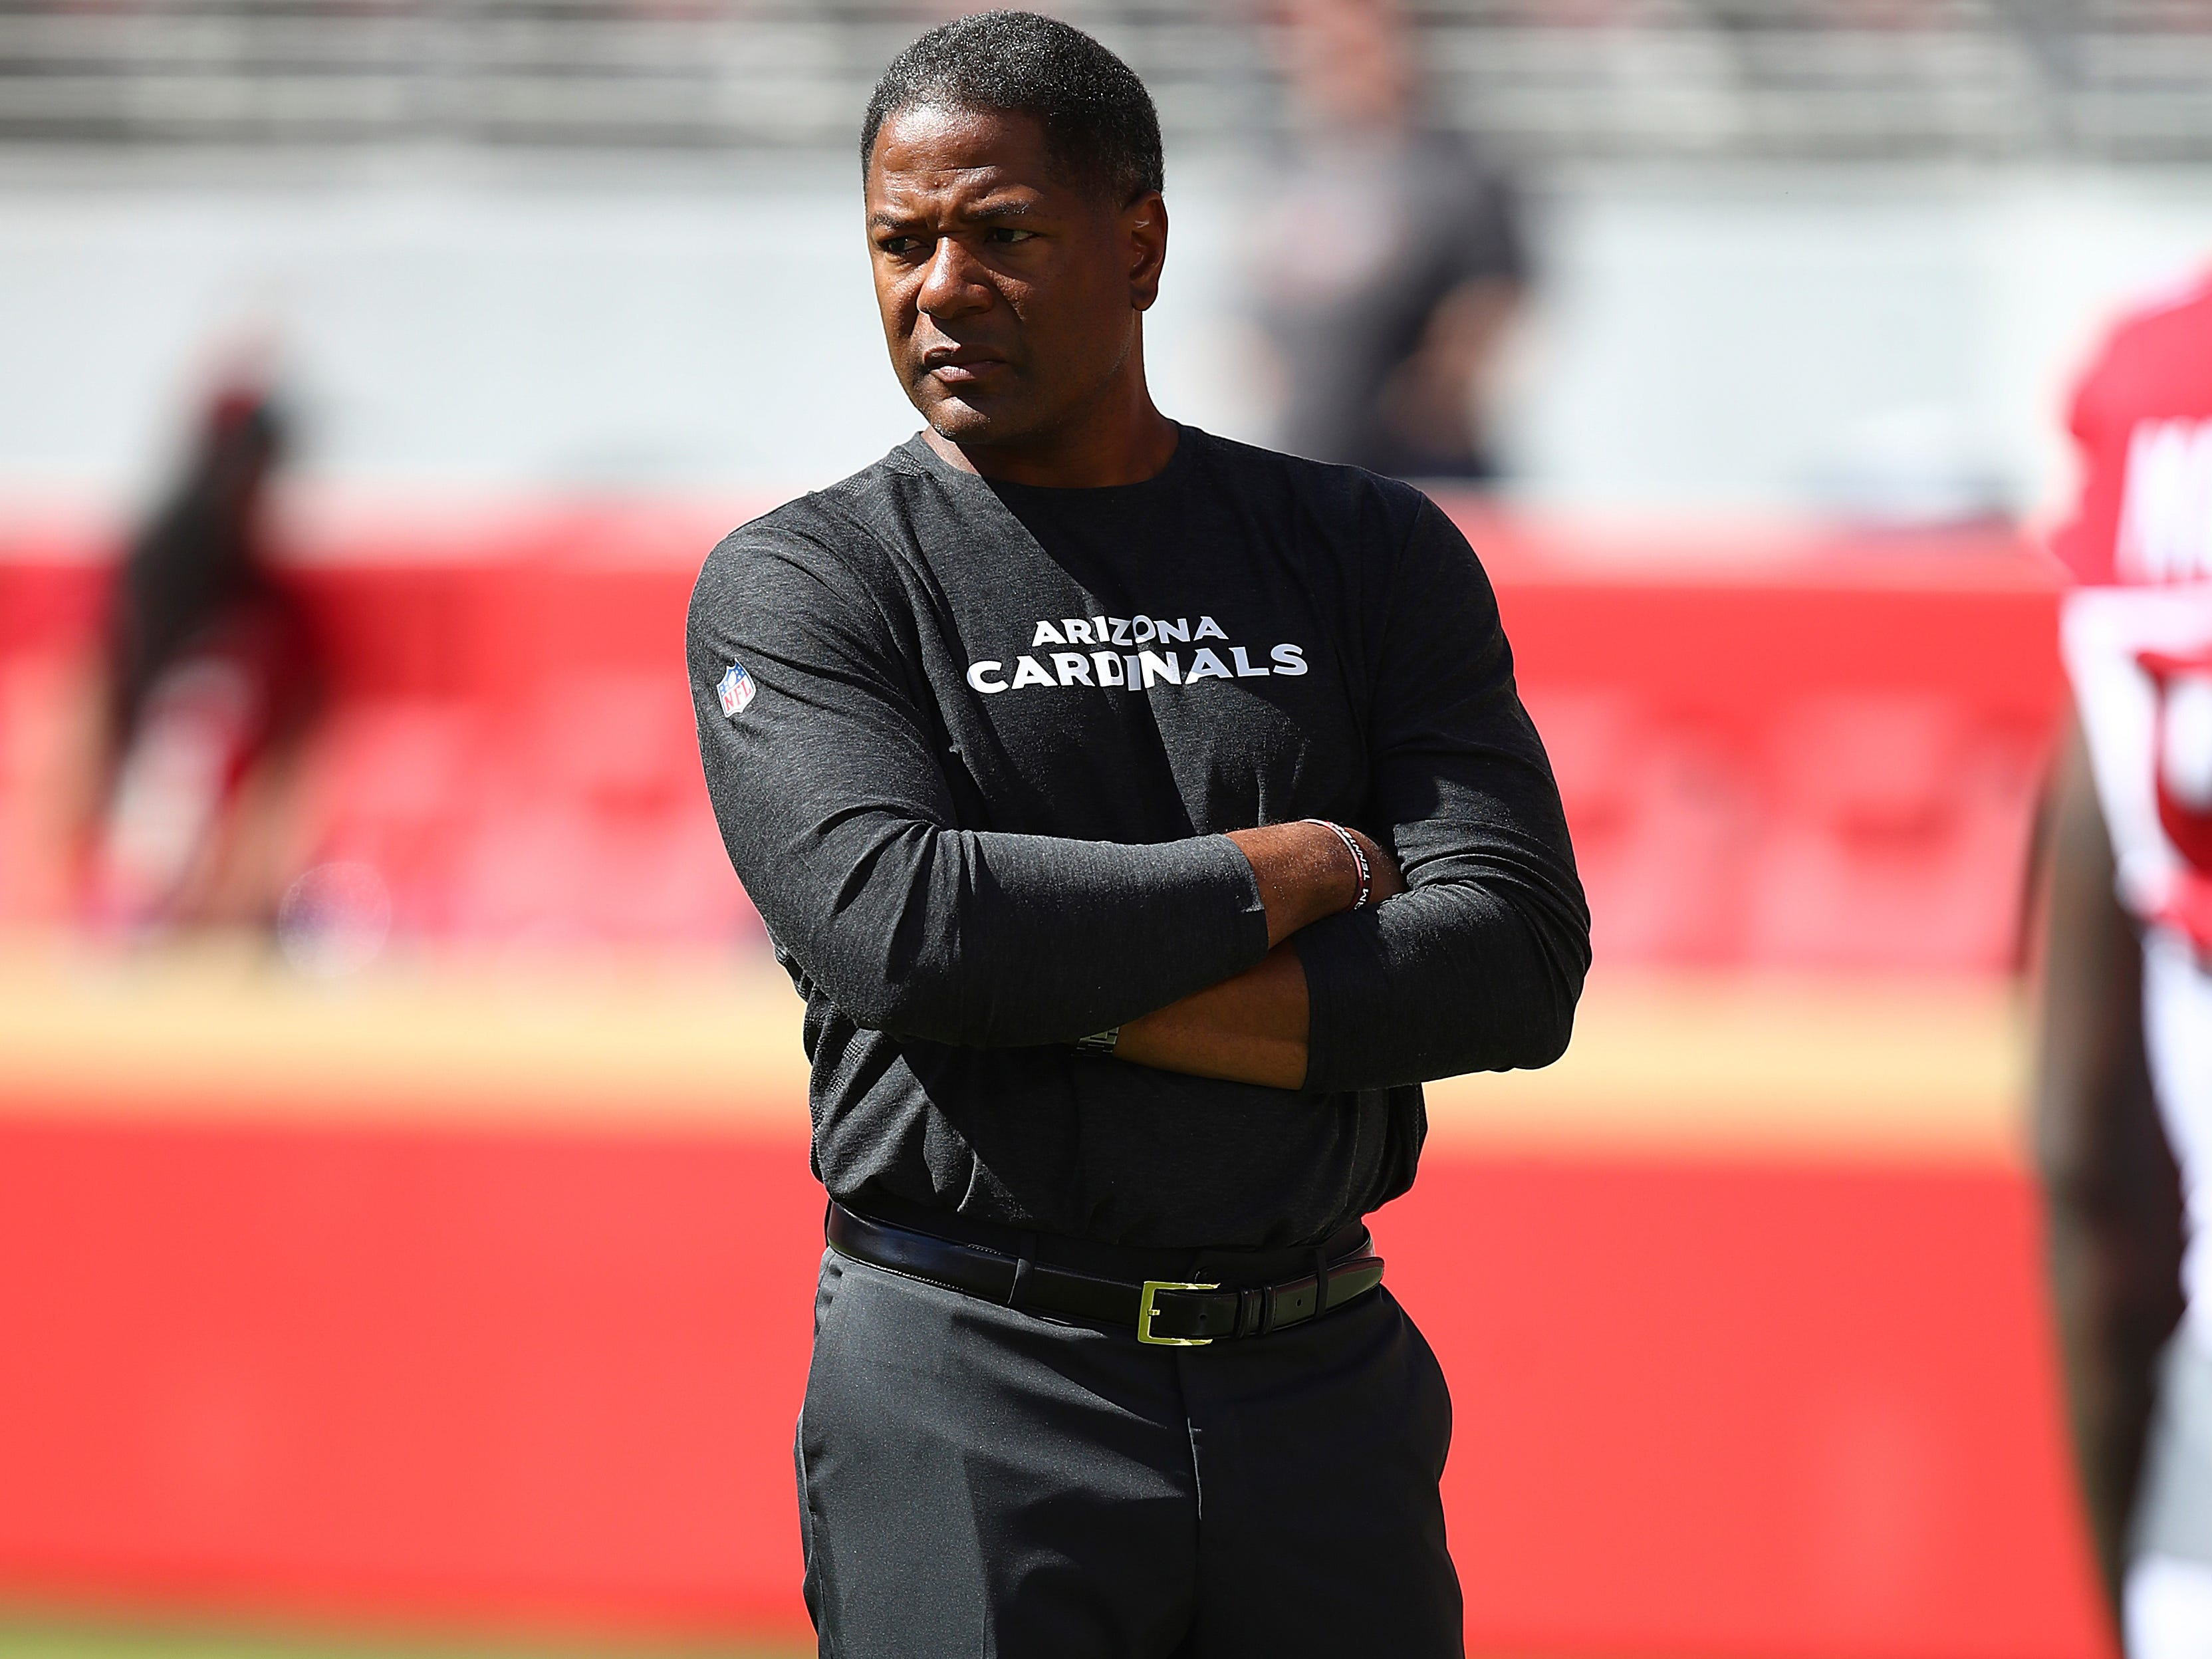 Arizona Cardinals head coach Steve Wilks watches as players warm up before an NFL football game against the San Francisco 49ers in Santa Clara, Calif., Sunday, Oct. 7, 2018.